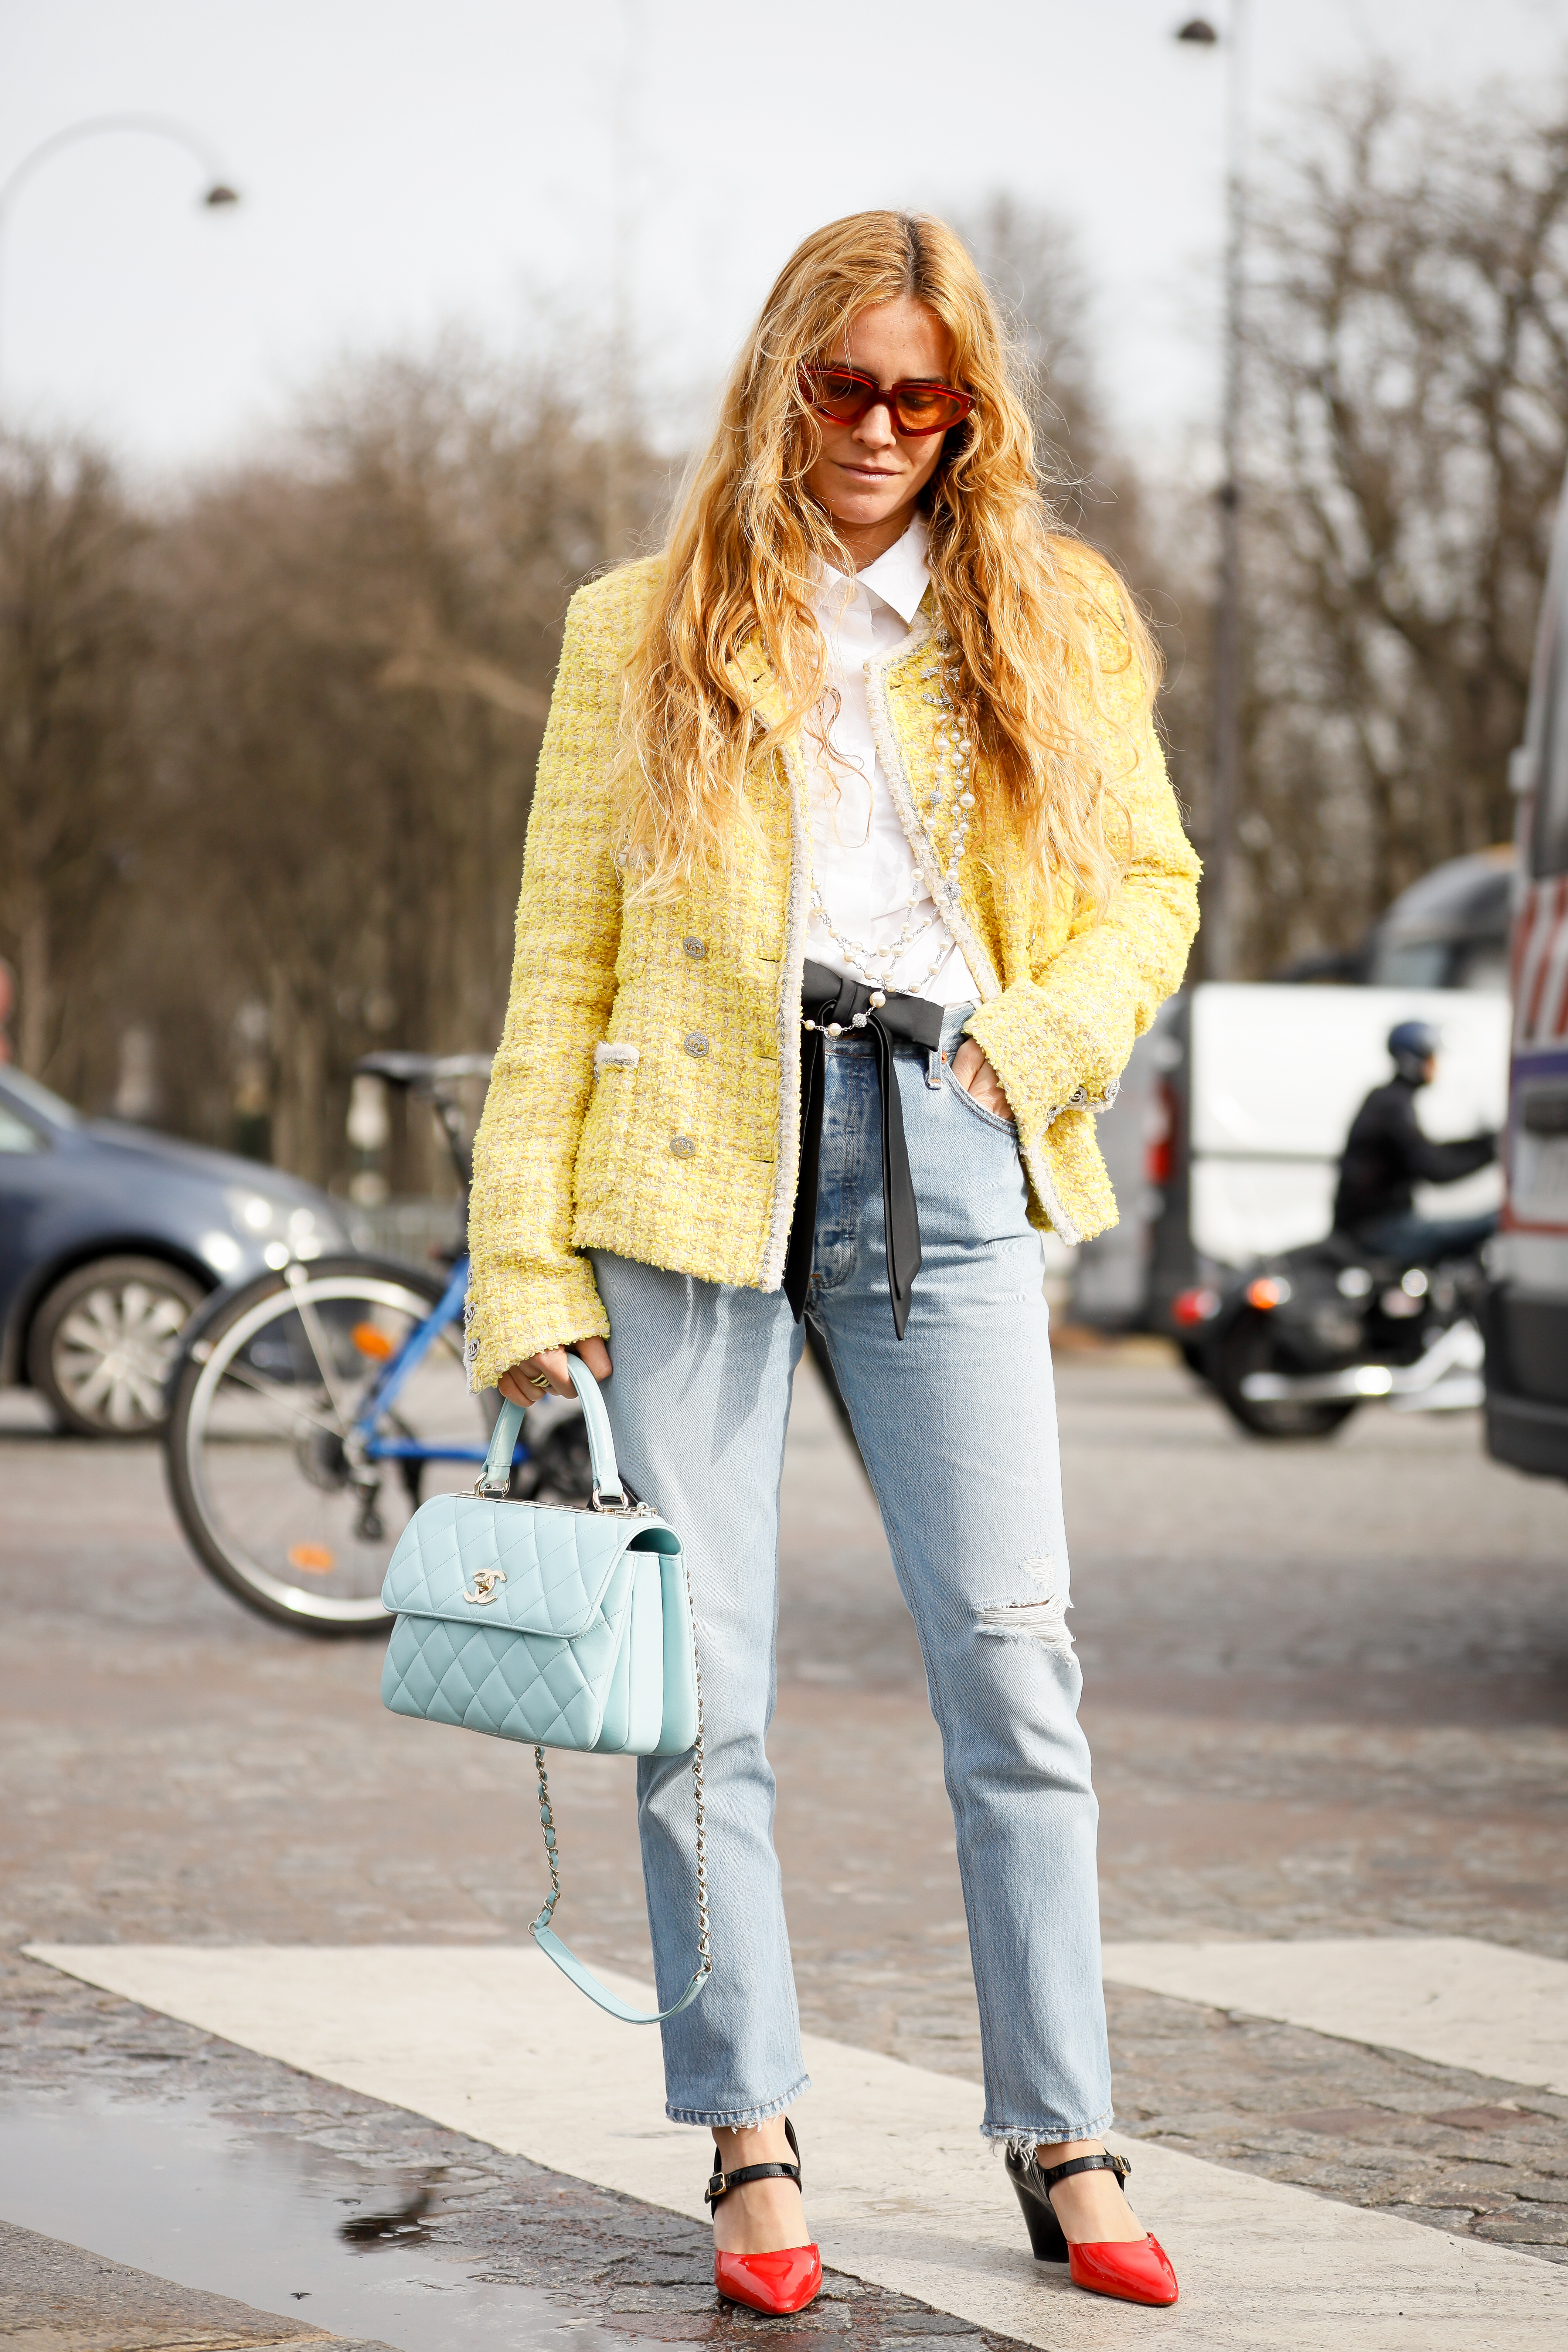 How To Wear Pantone's 'Wallpaper Yellow', According To Scandi Influencers